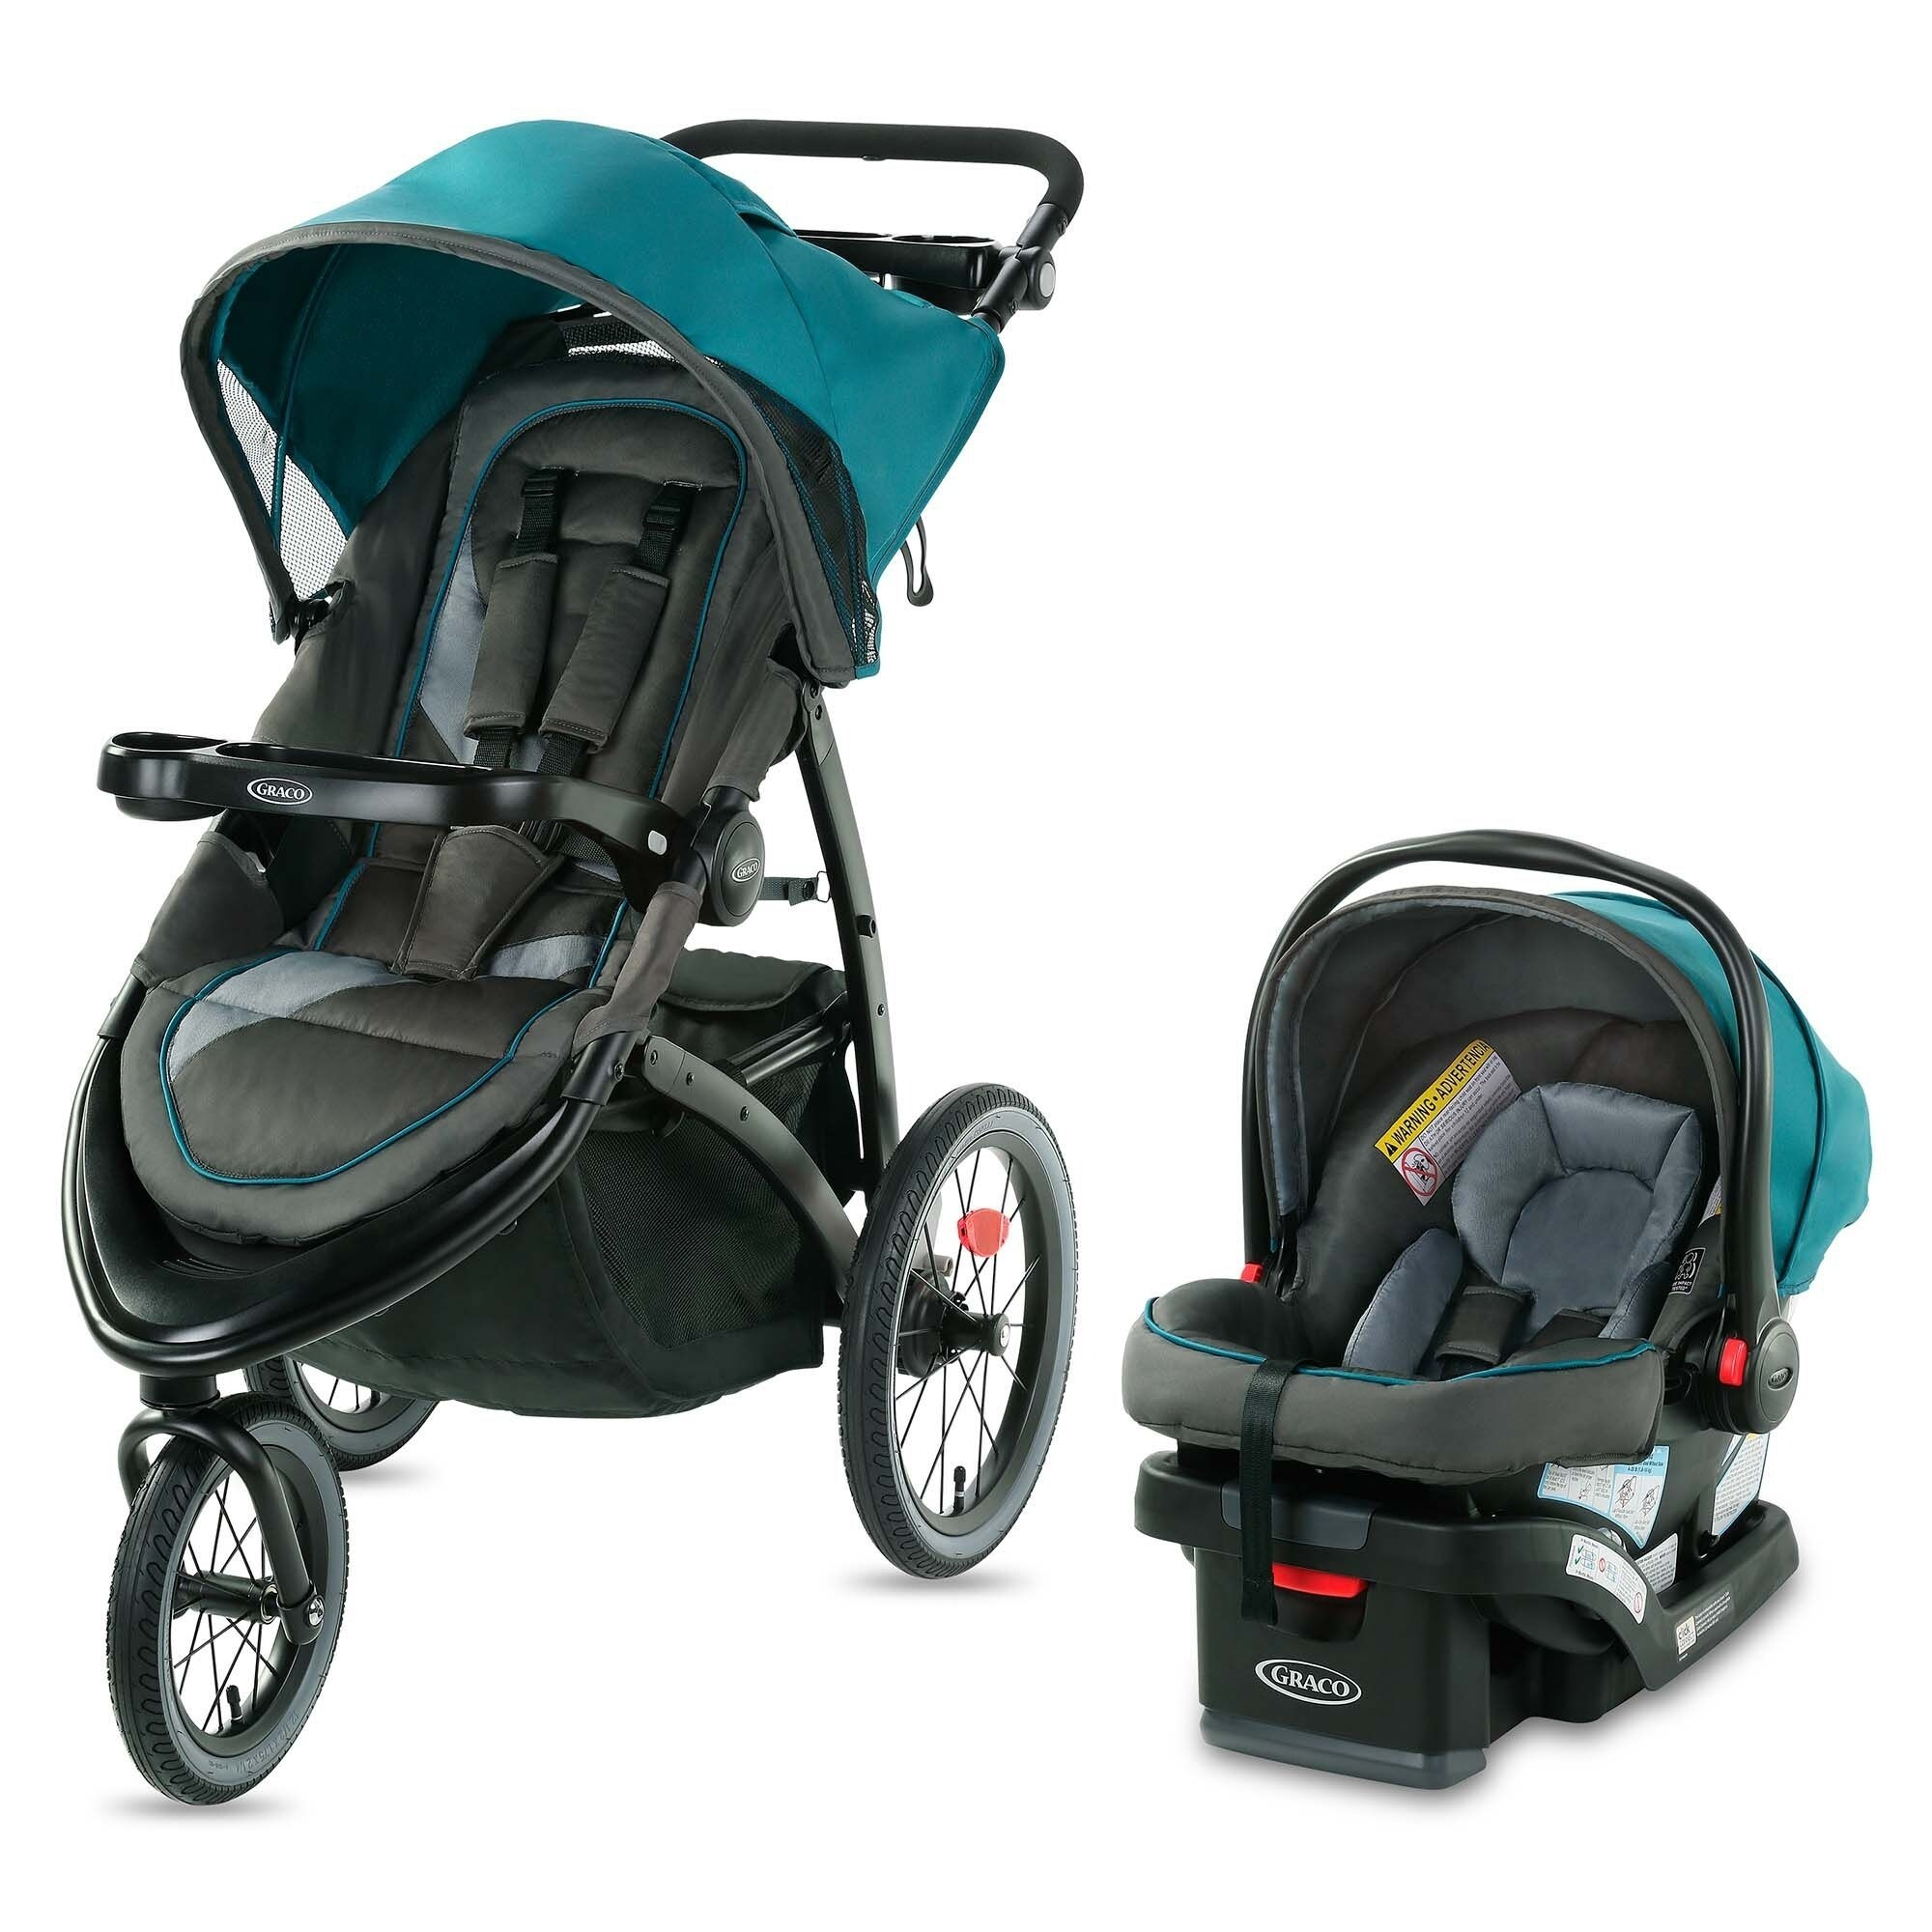 Graco Fastaction Jogger Lx Travel System Seaton